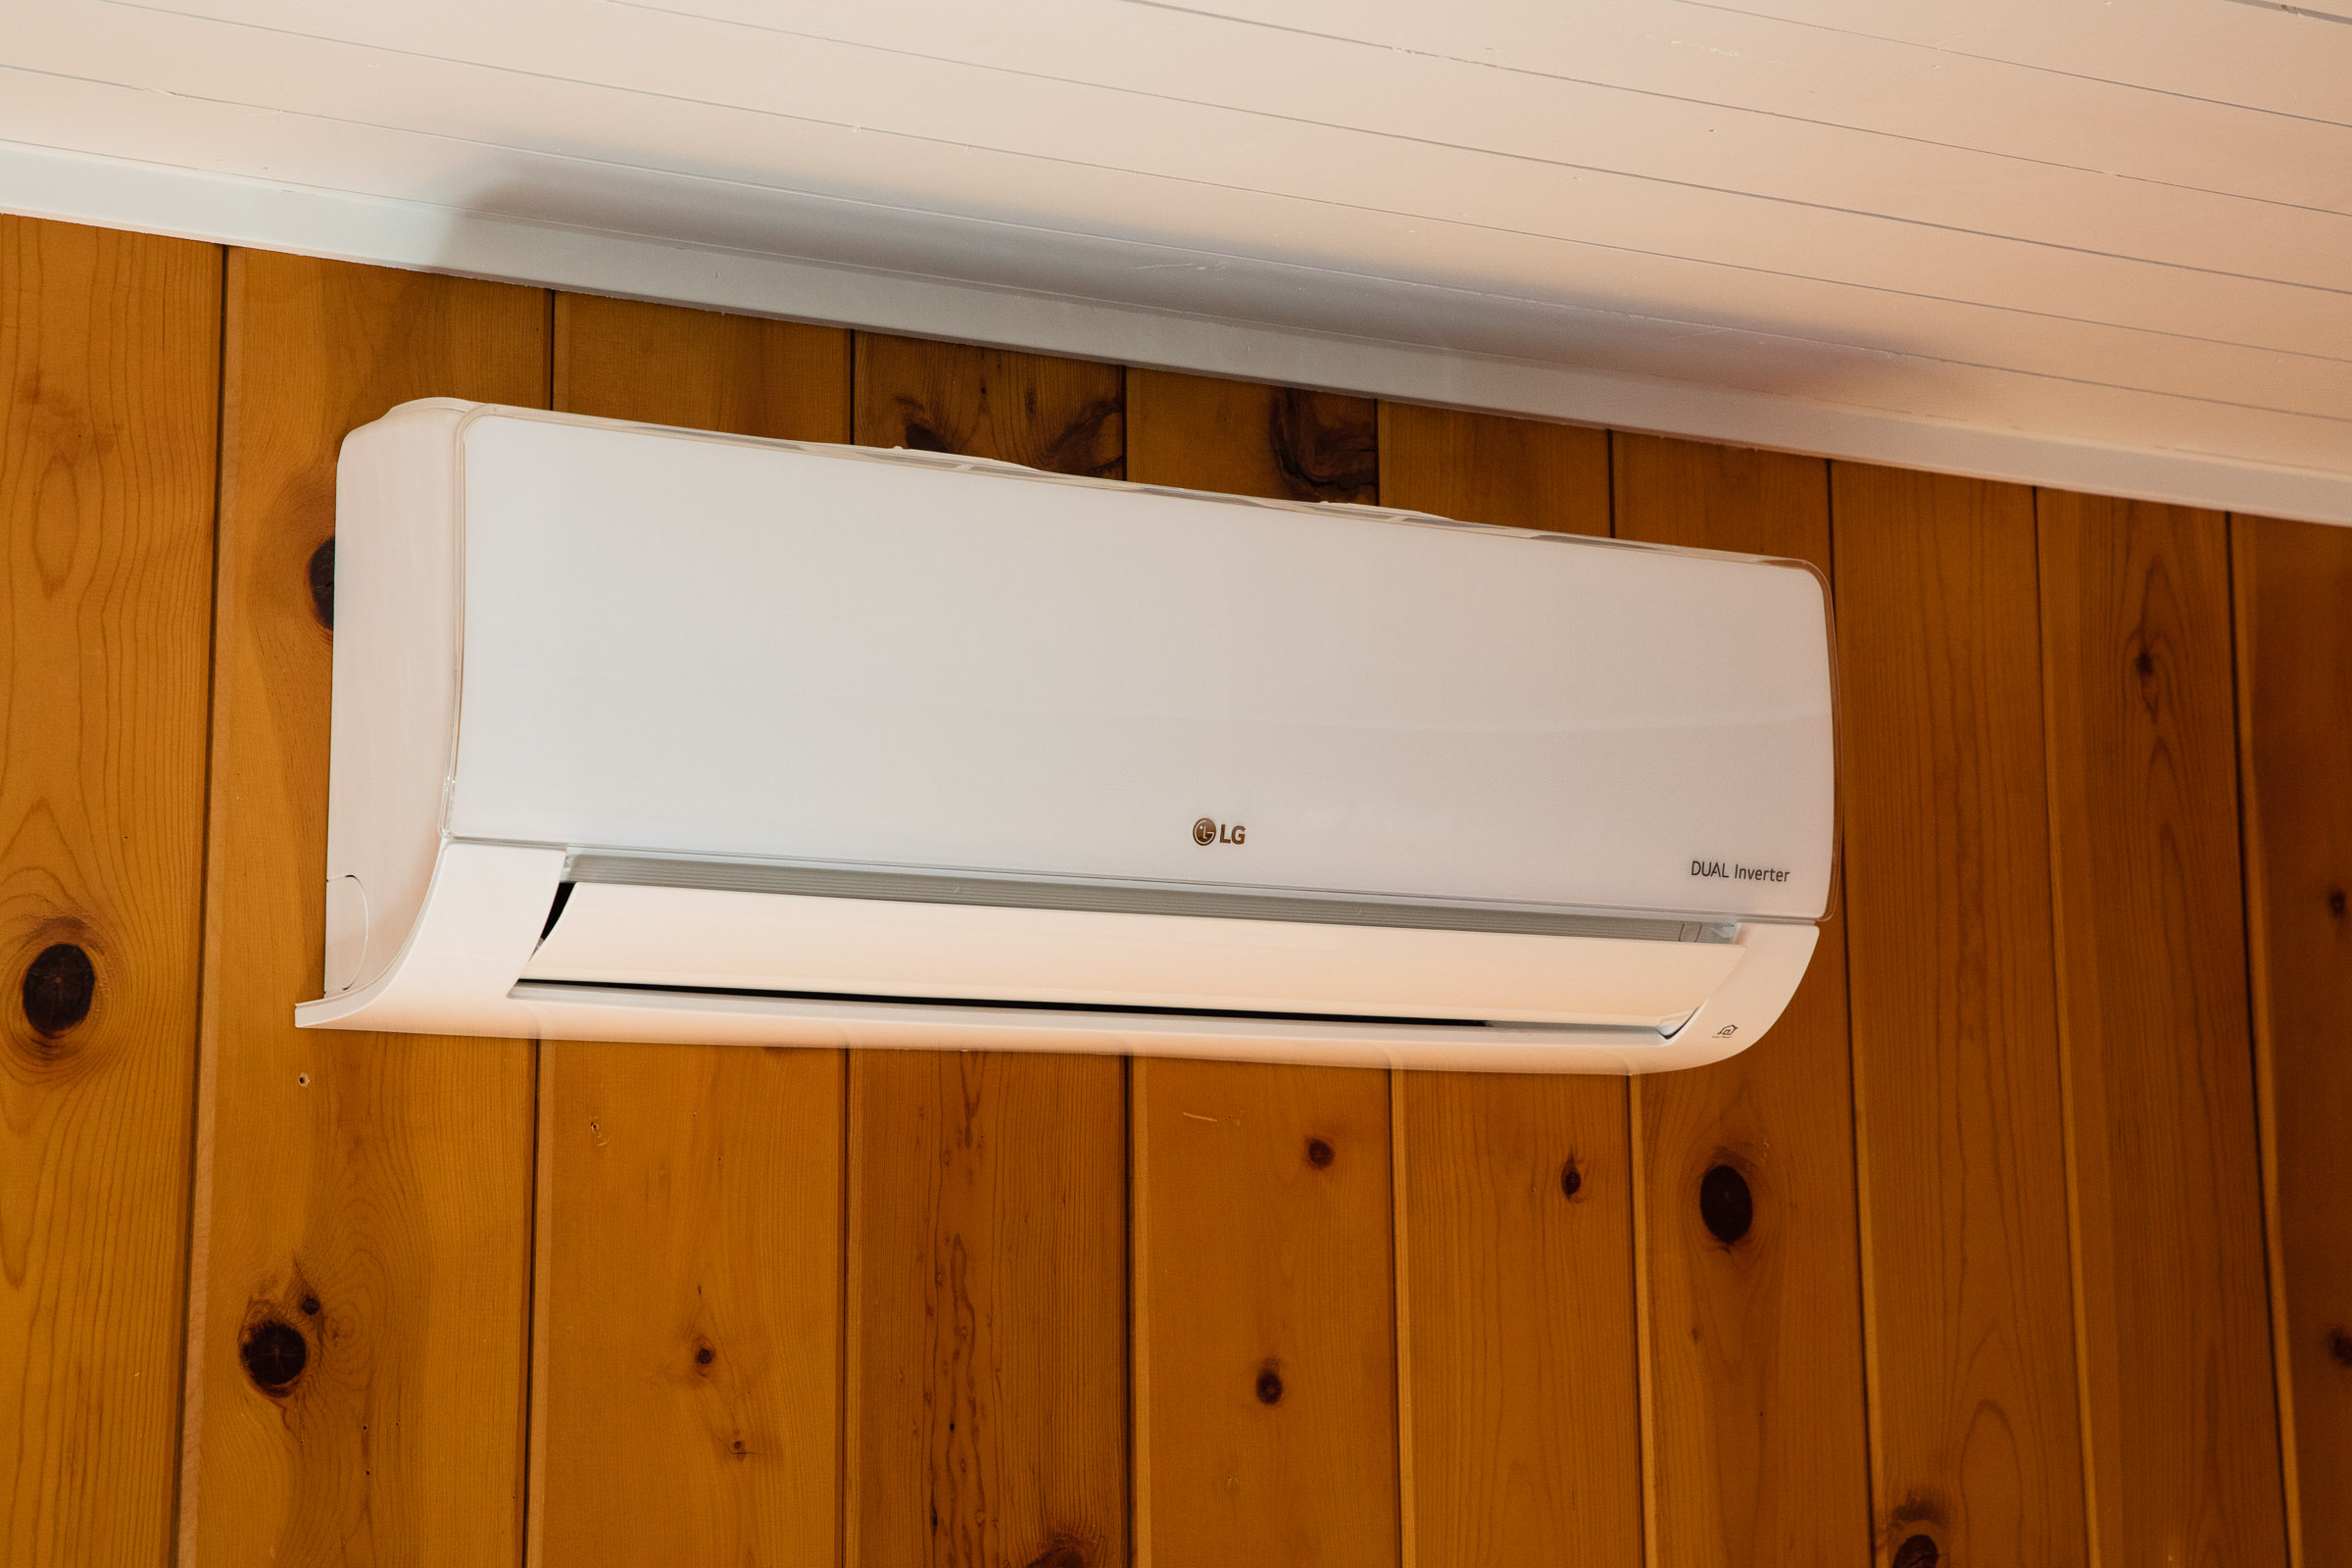 The house has new mini splits throughout for both heating and cooling.